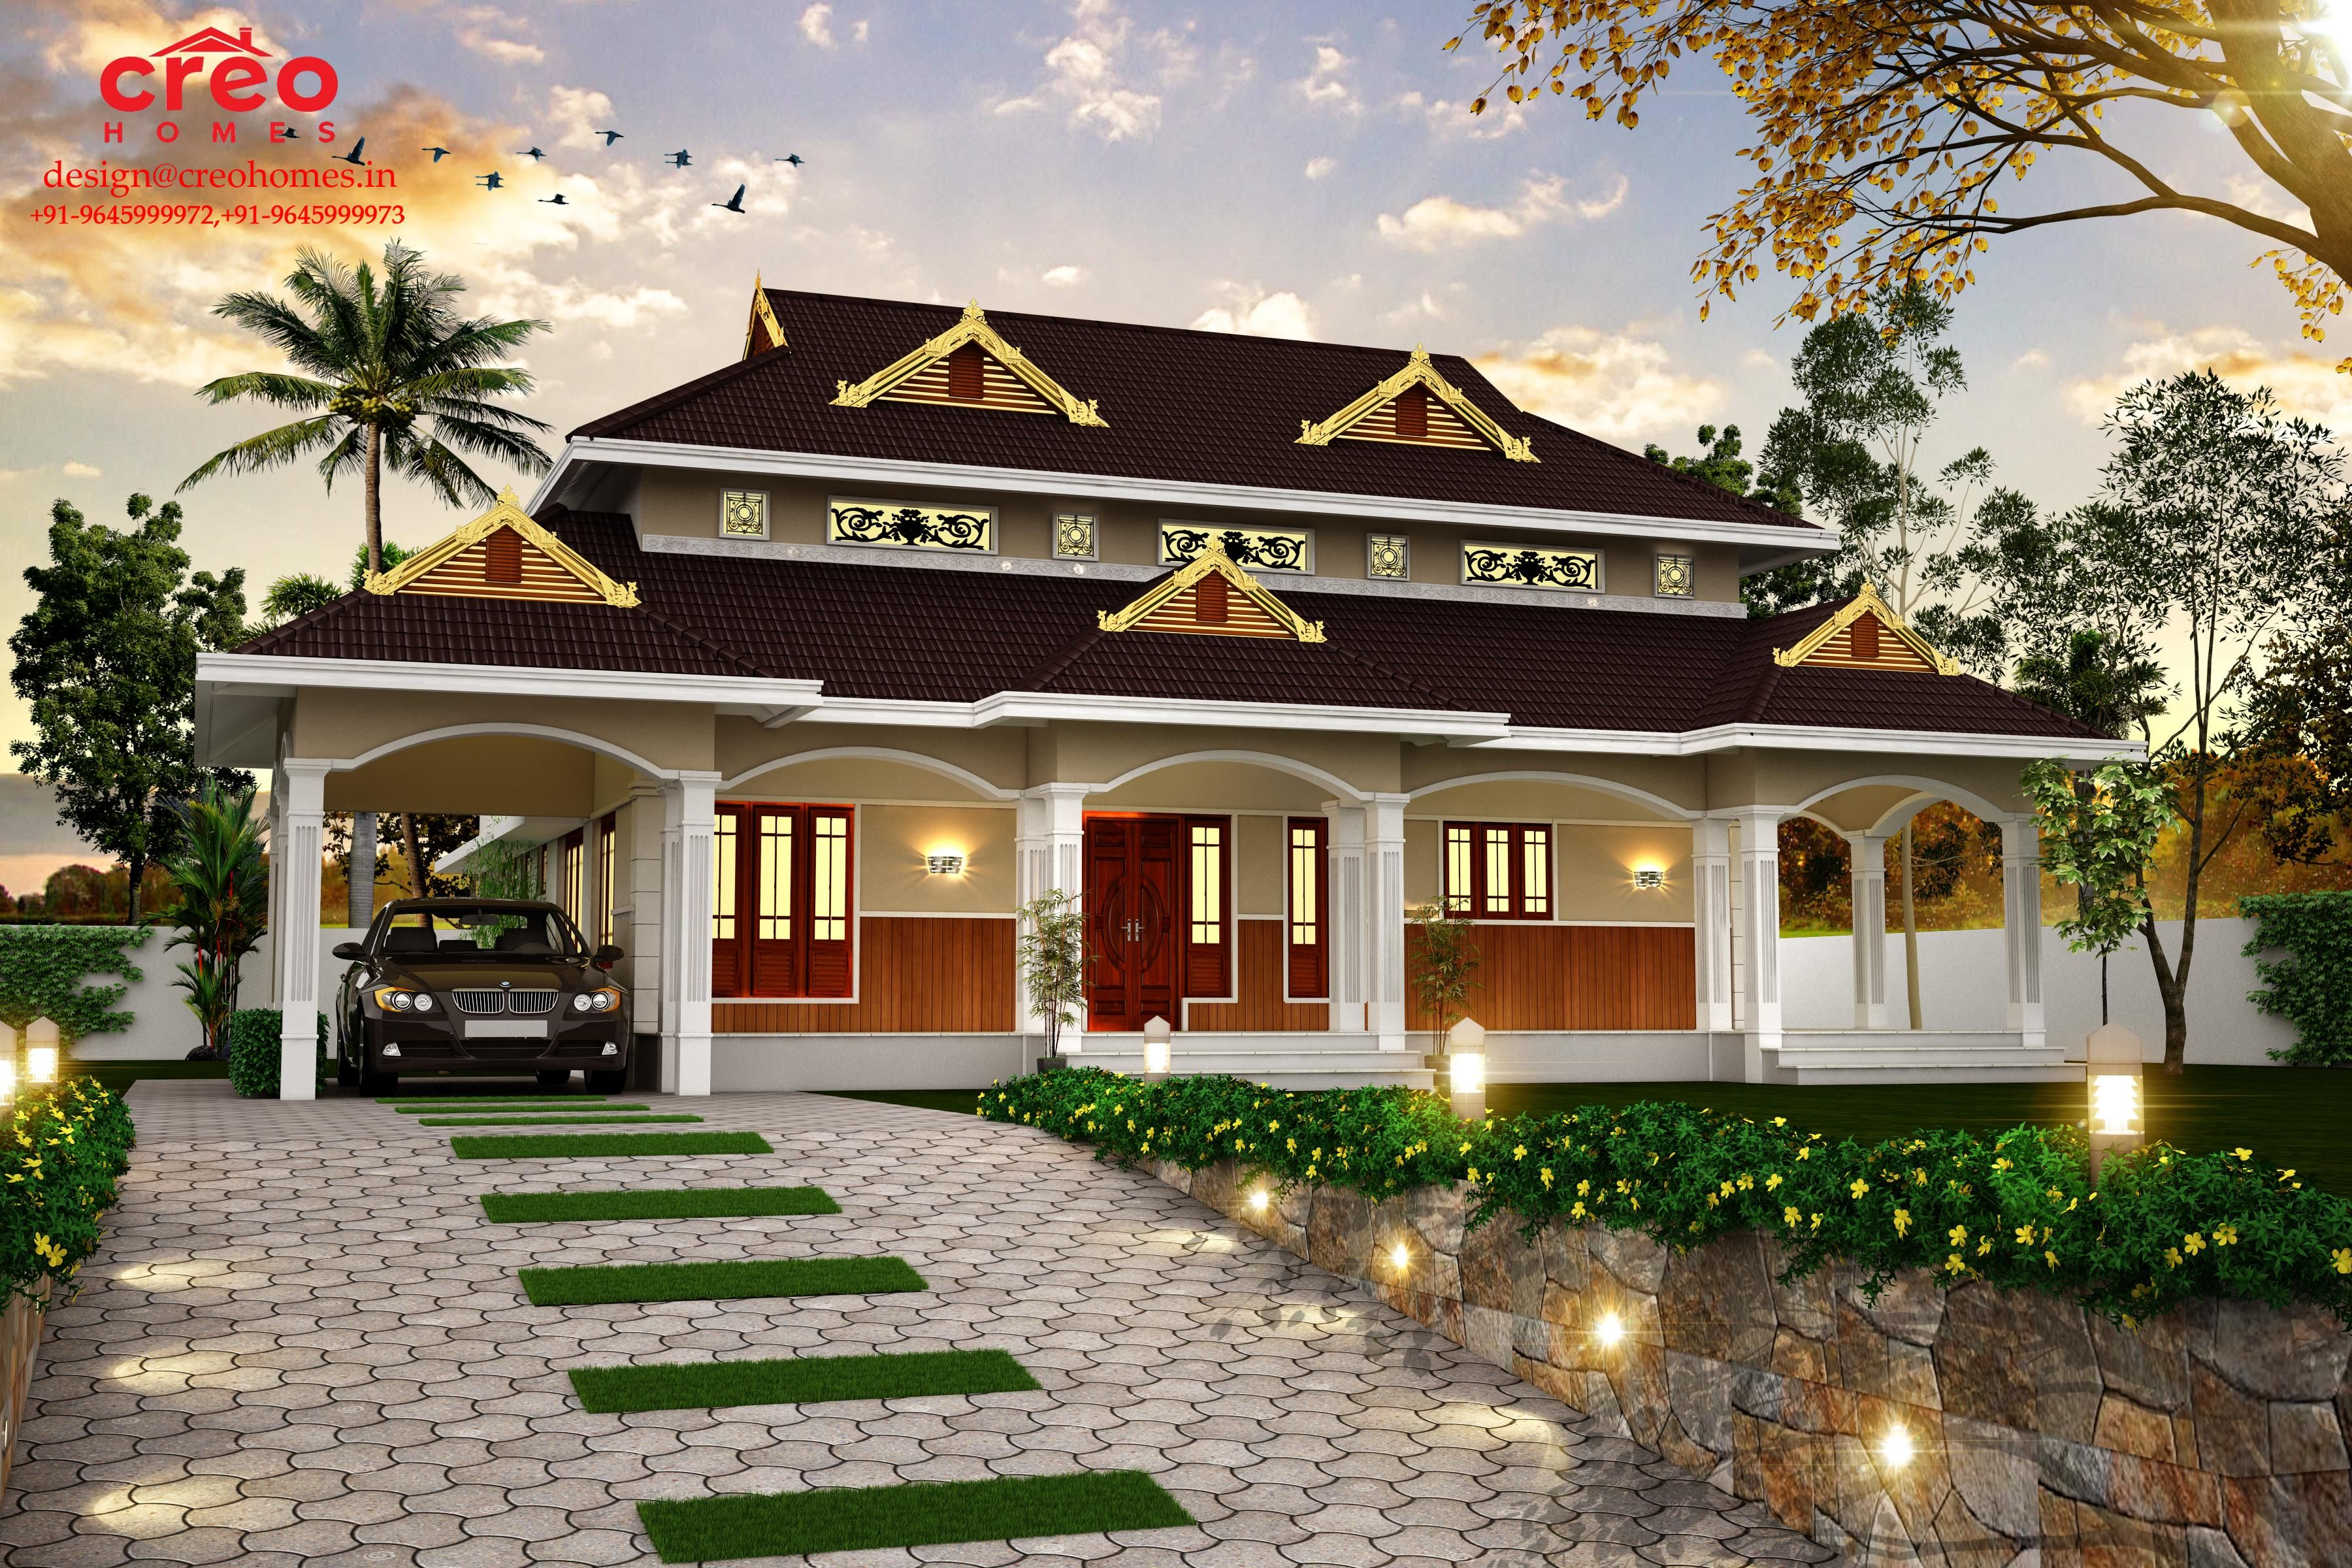 Design For A Kerala Home.